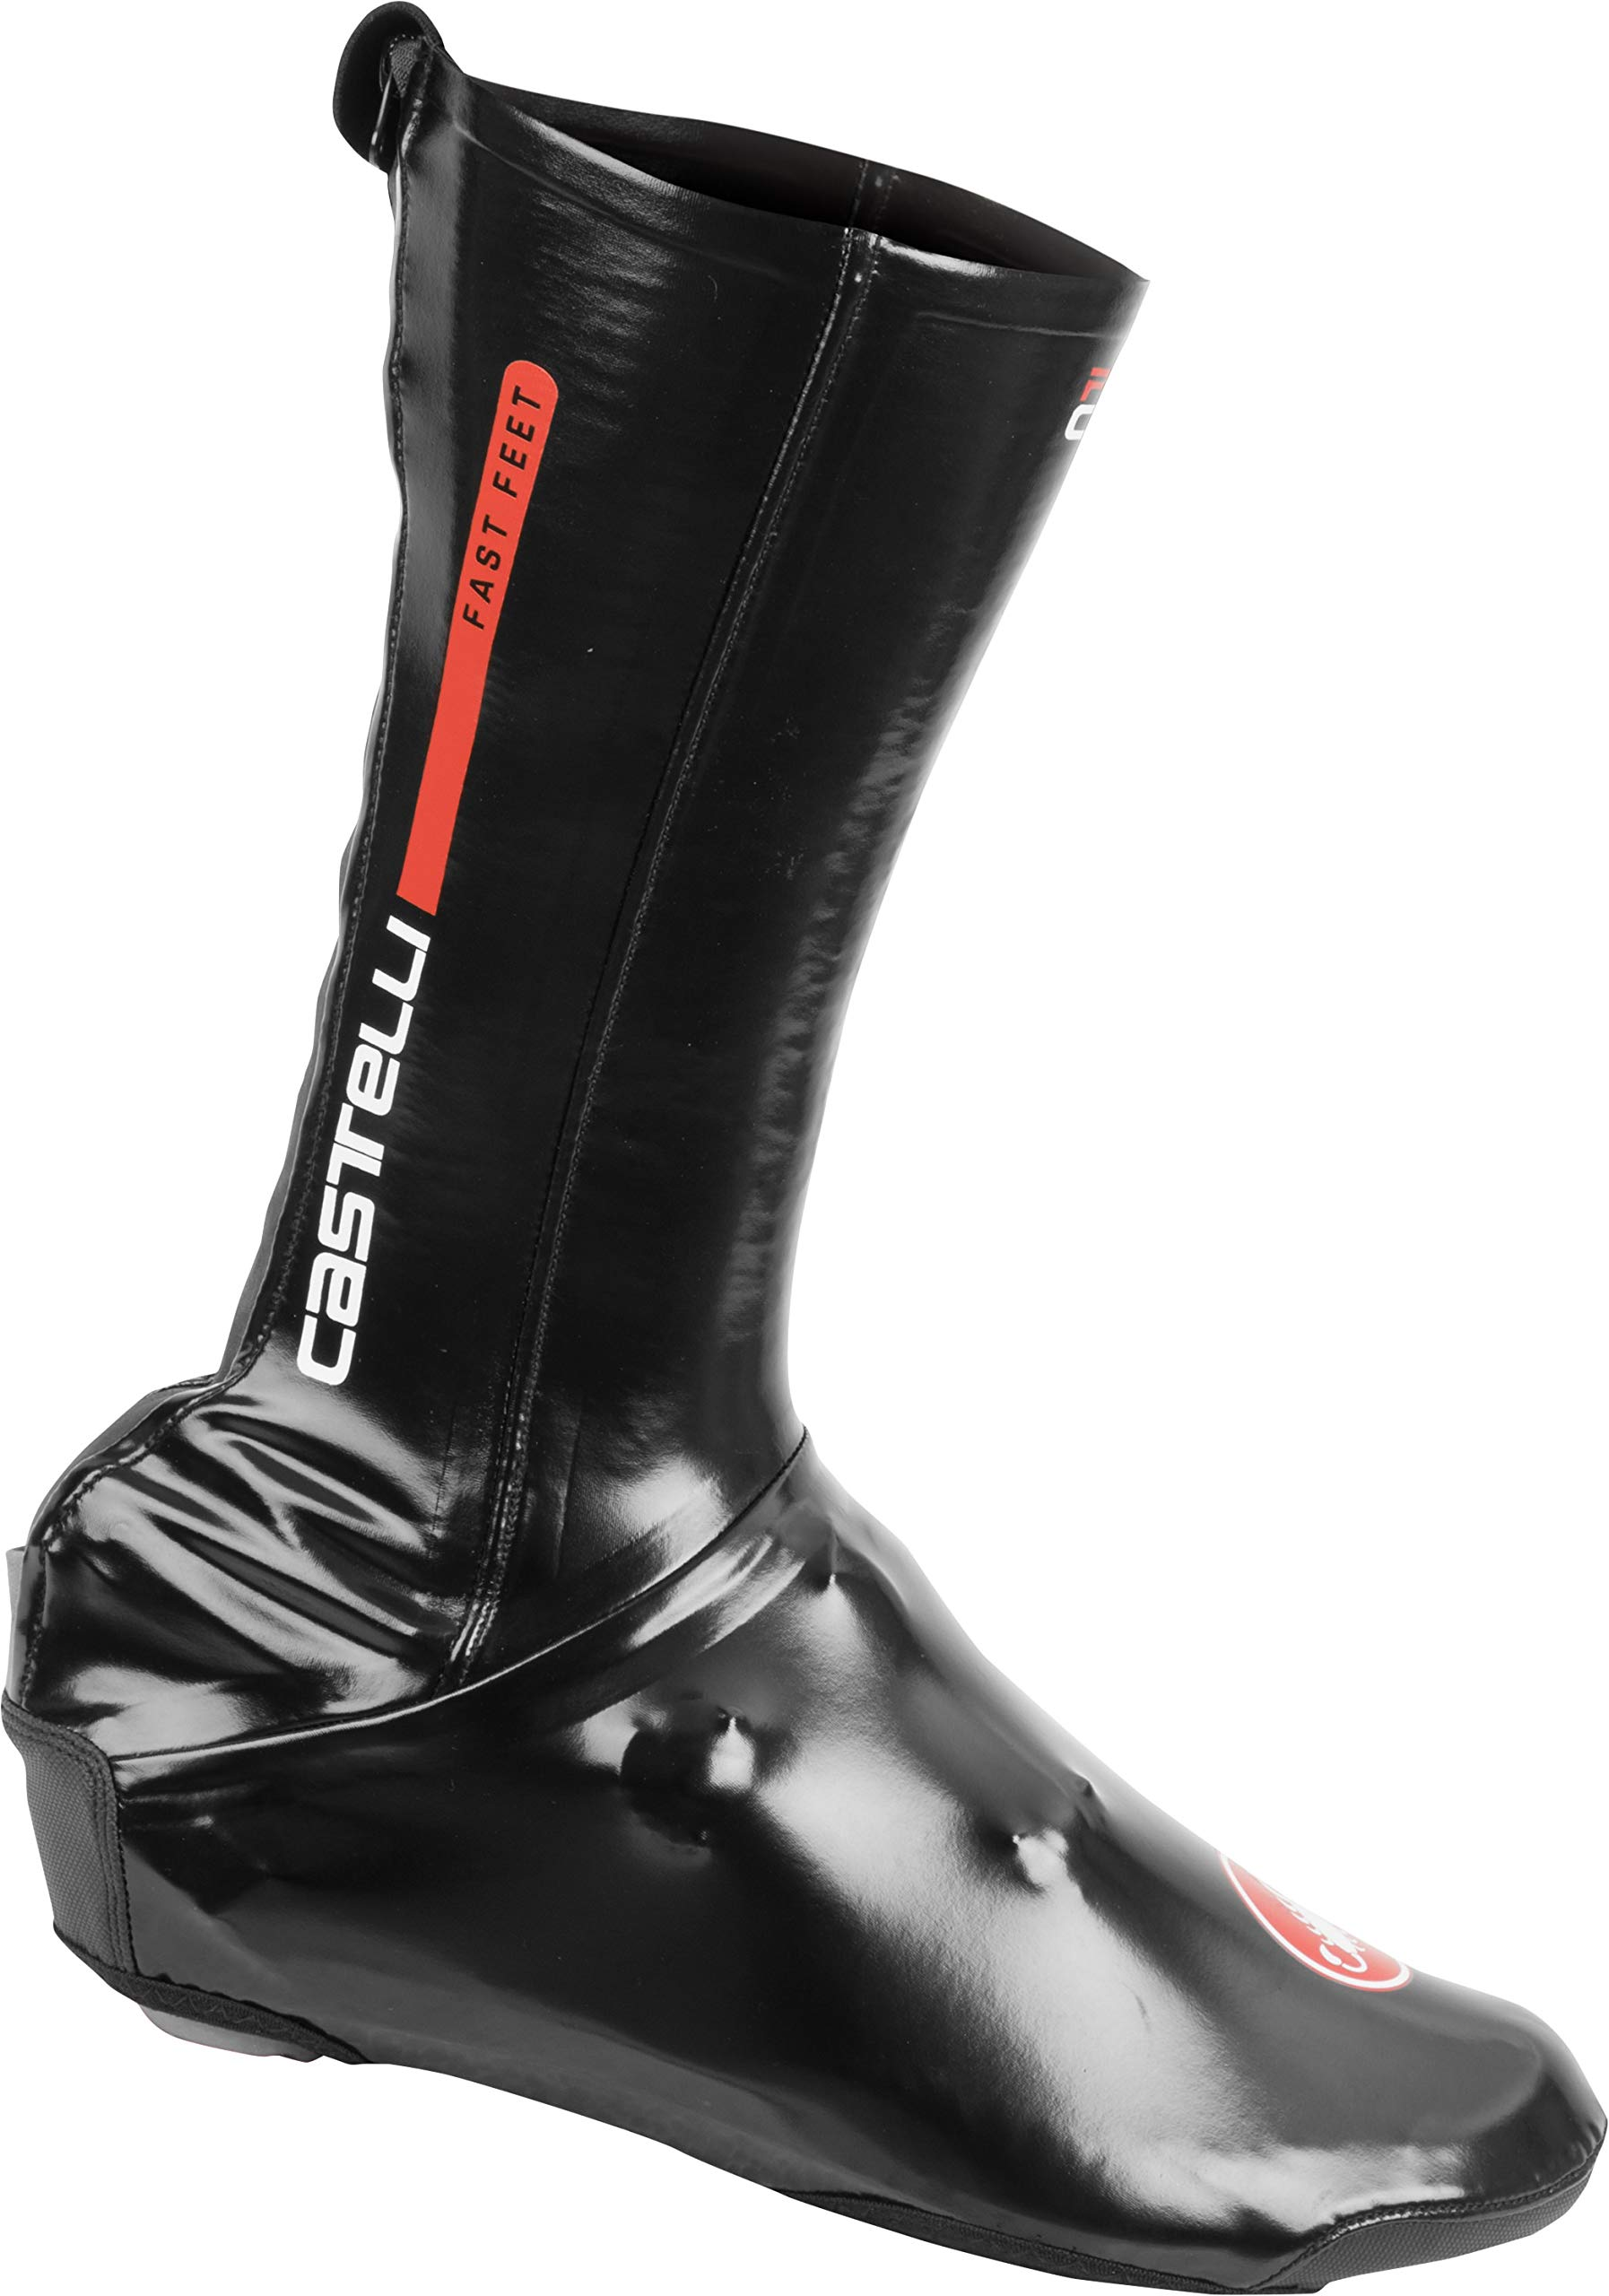 Castelli Fast Feet Road Shoecover Black, L